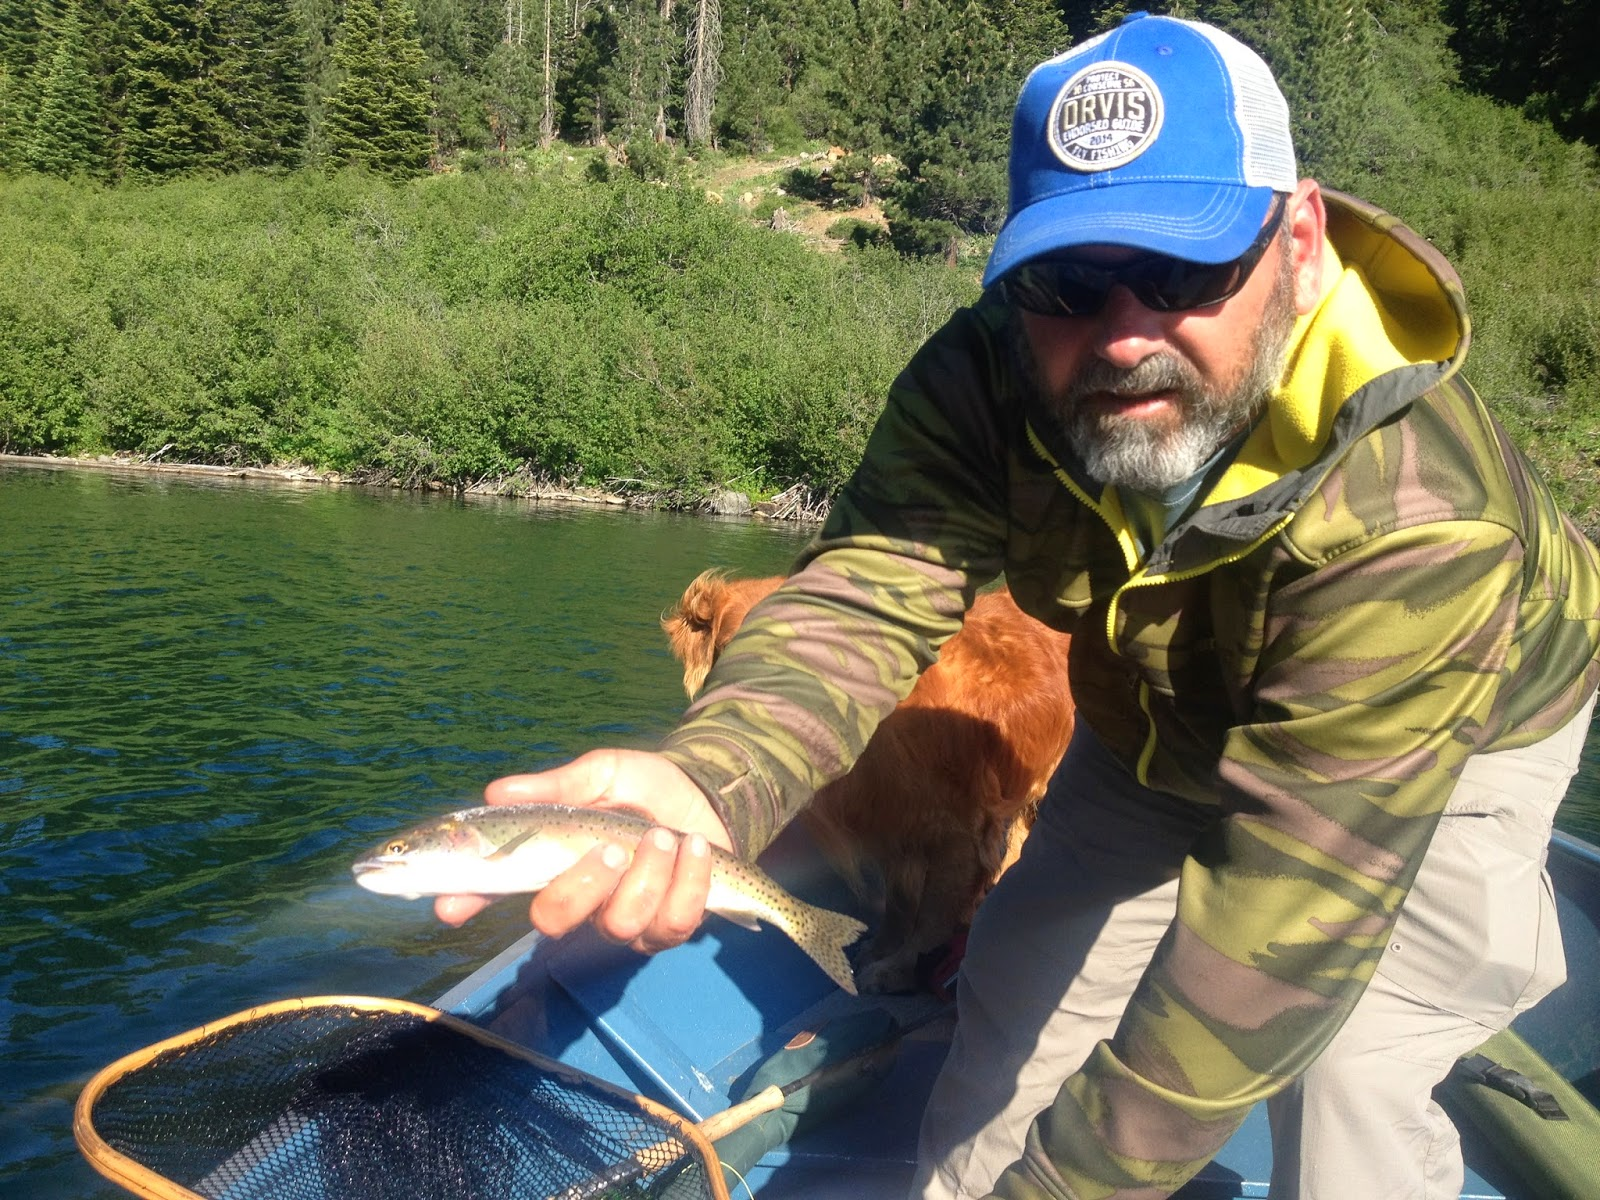 Northern sierra fly fishing independence lake 6 24 14 for Sierra fly fishing